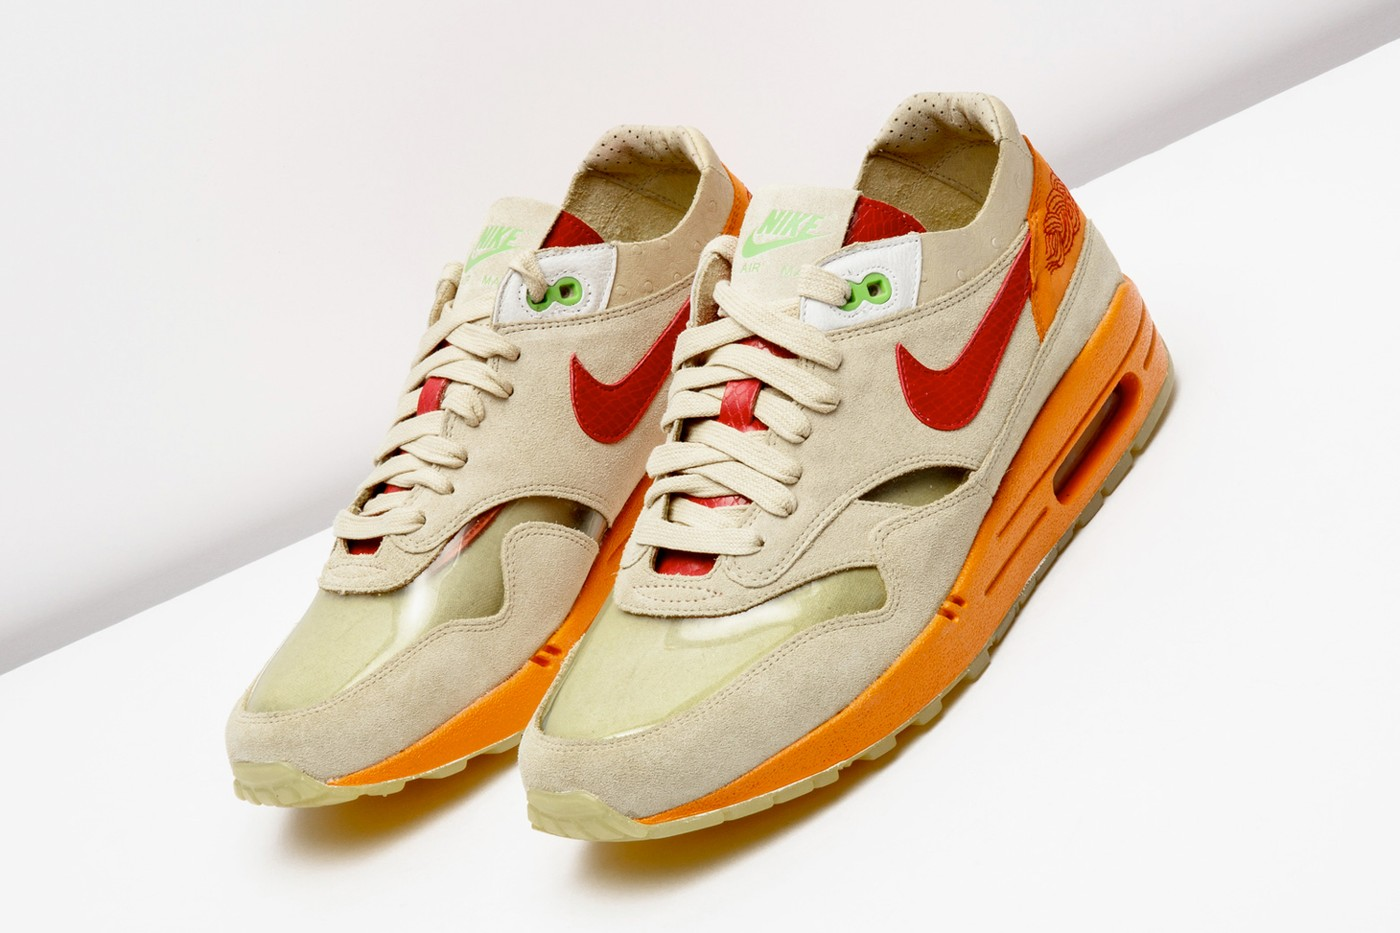 """CLOT x Nike Air Max 1 """"Kiss of Death"""" Reportedly Returning in 2021"""